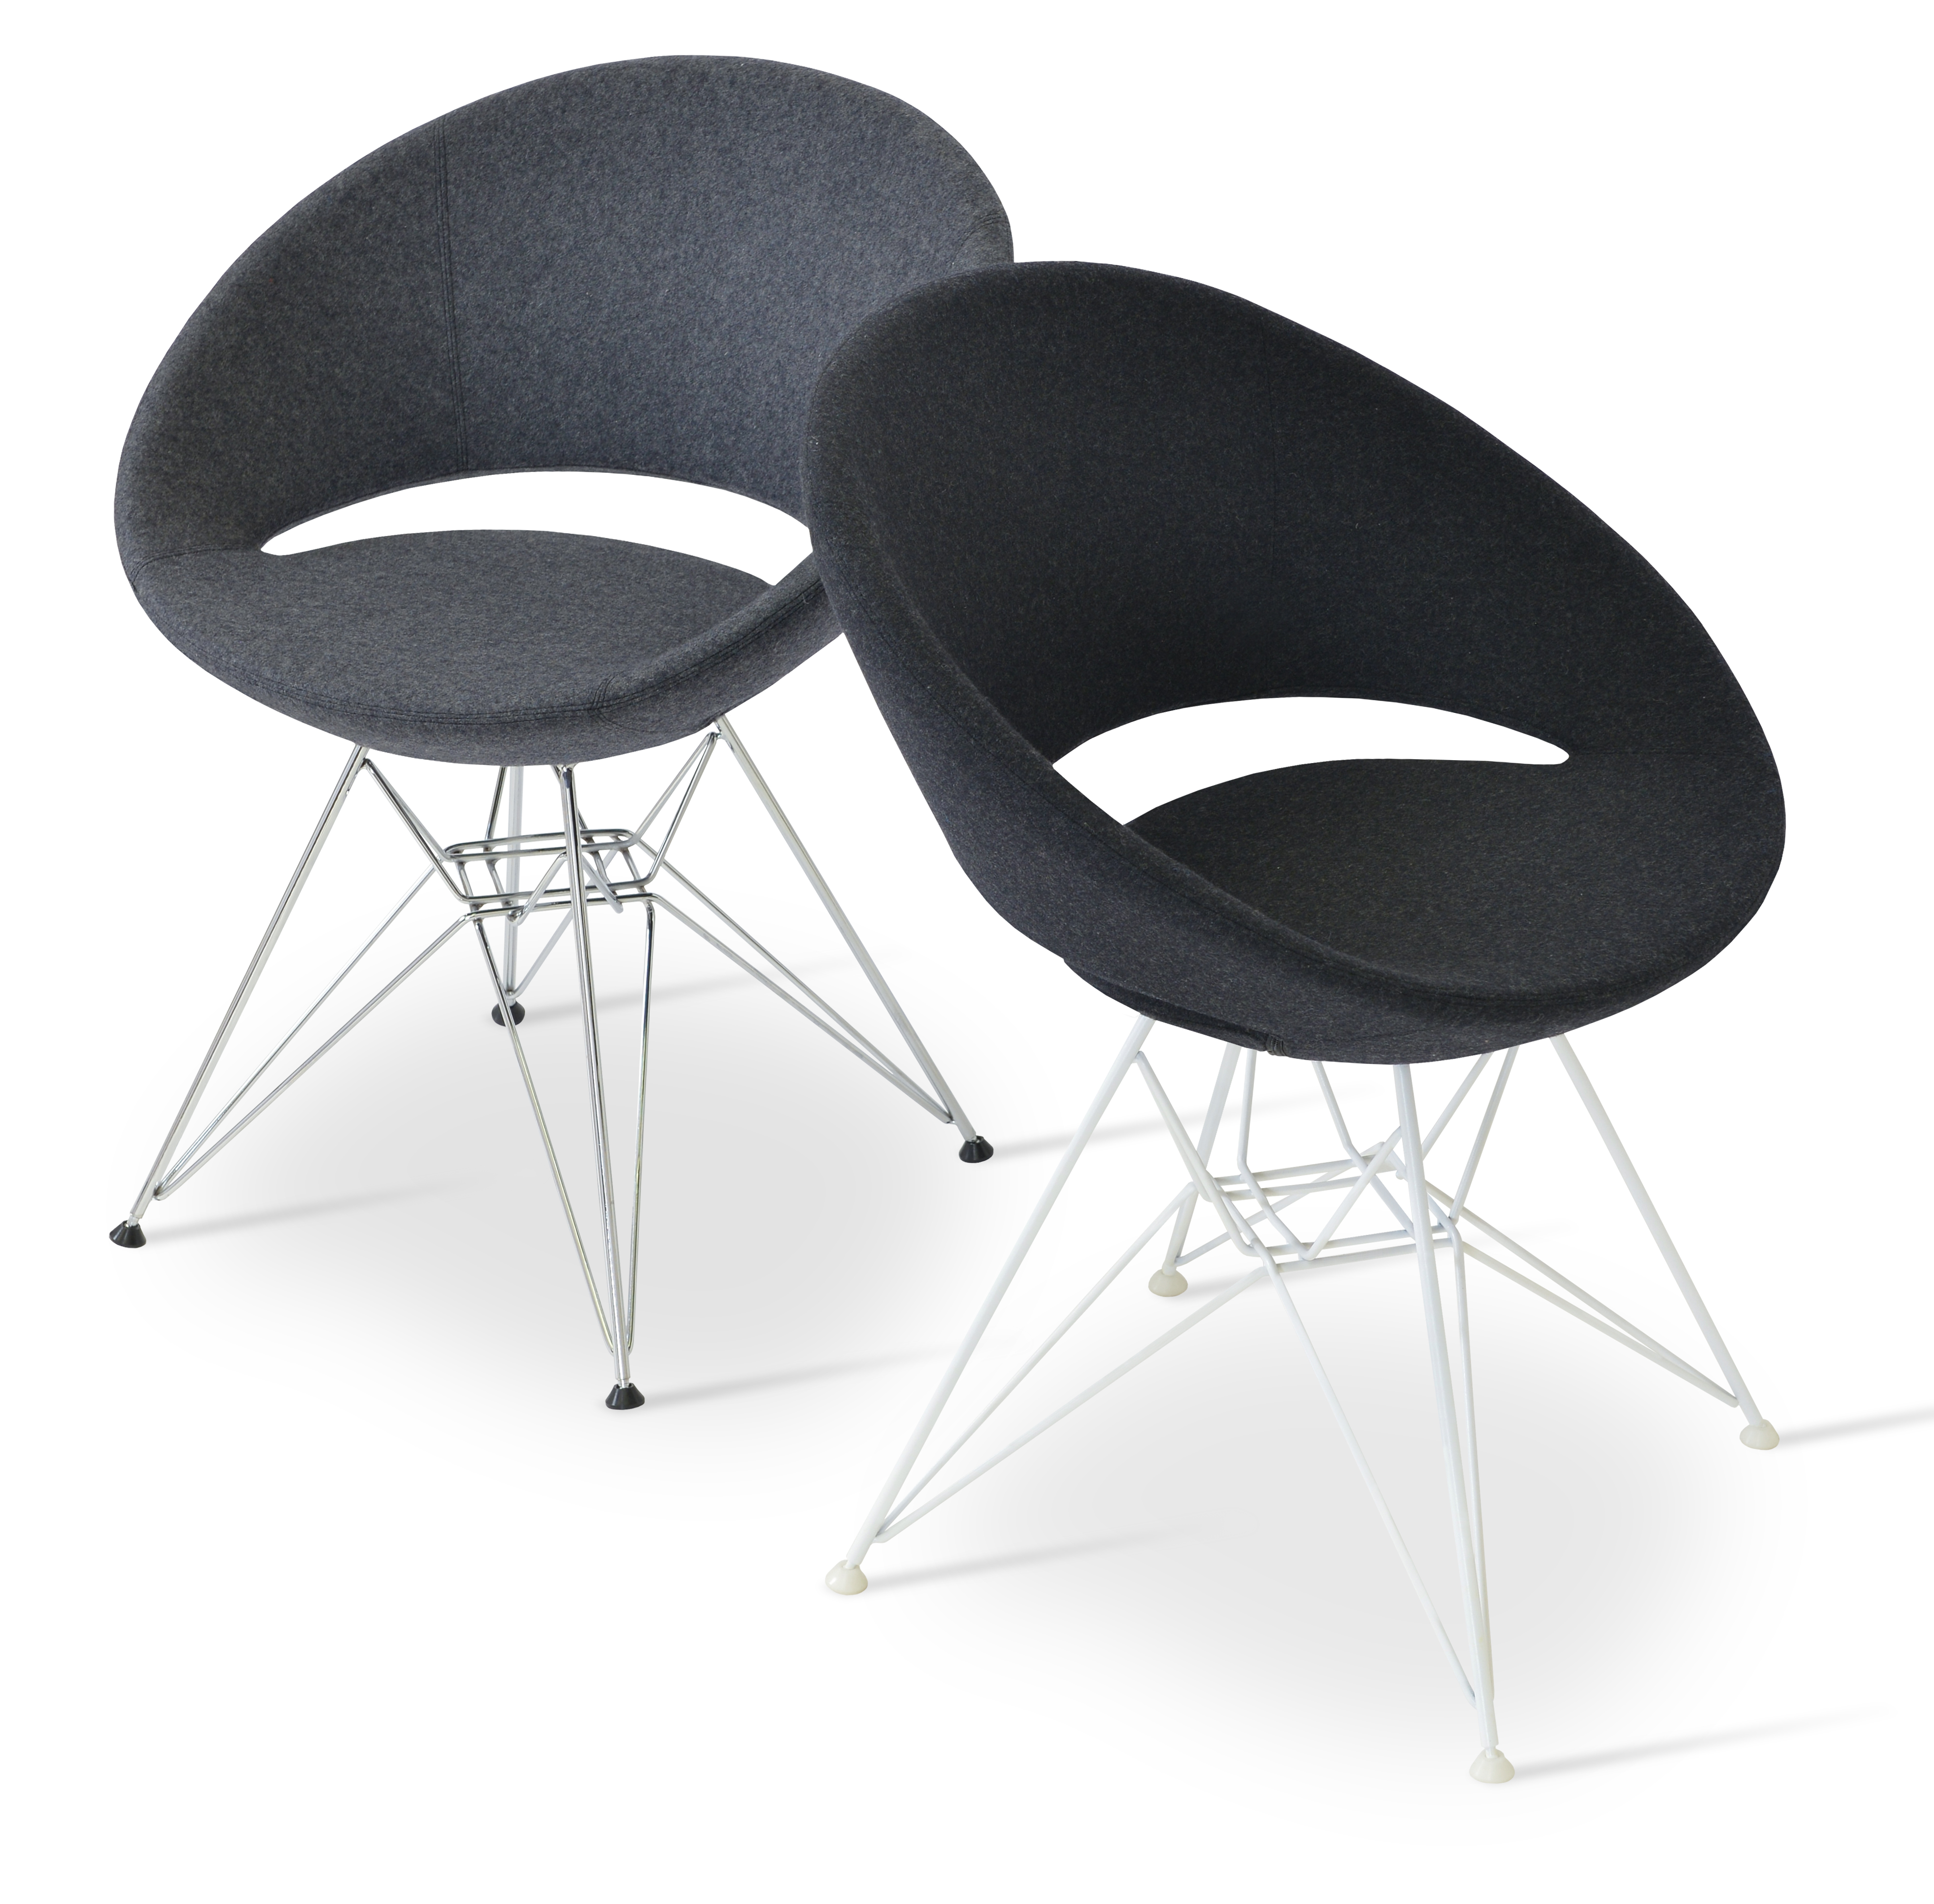 Crescent Tower Euroform Contract Furniture